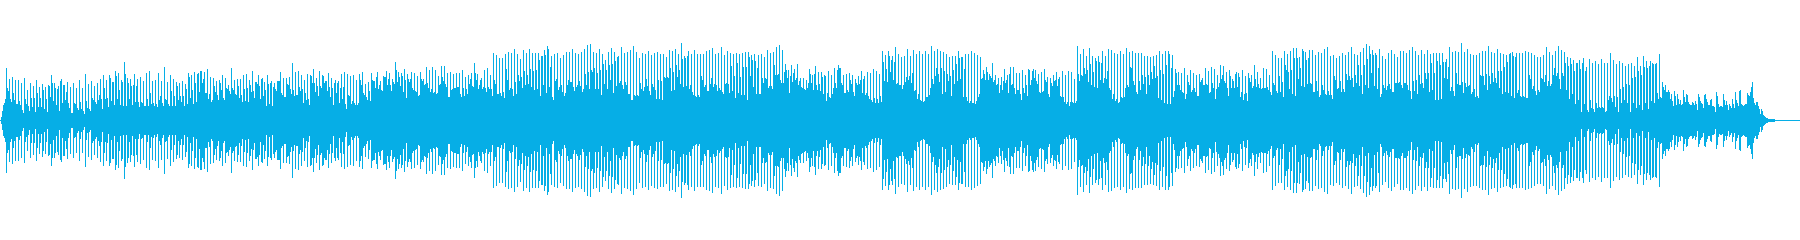 Corporate VP / Relax / Impressive / Refreshing's reproduced waveform